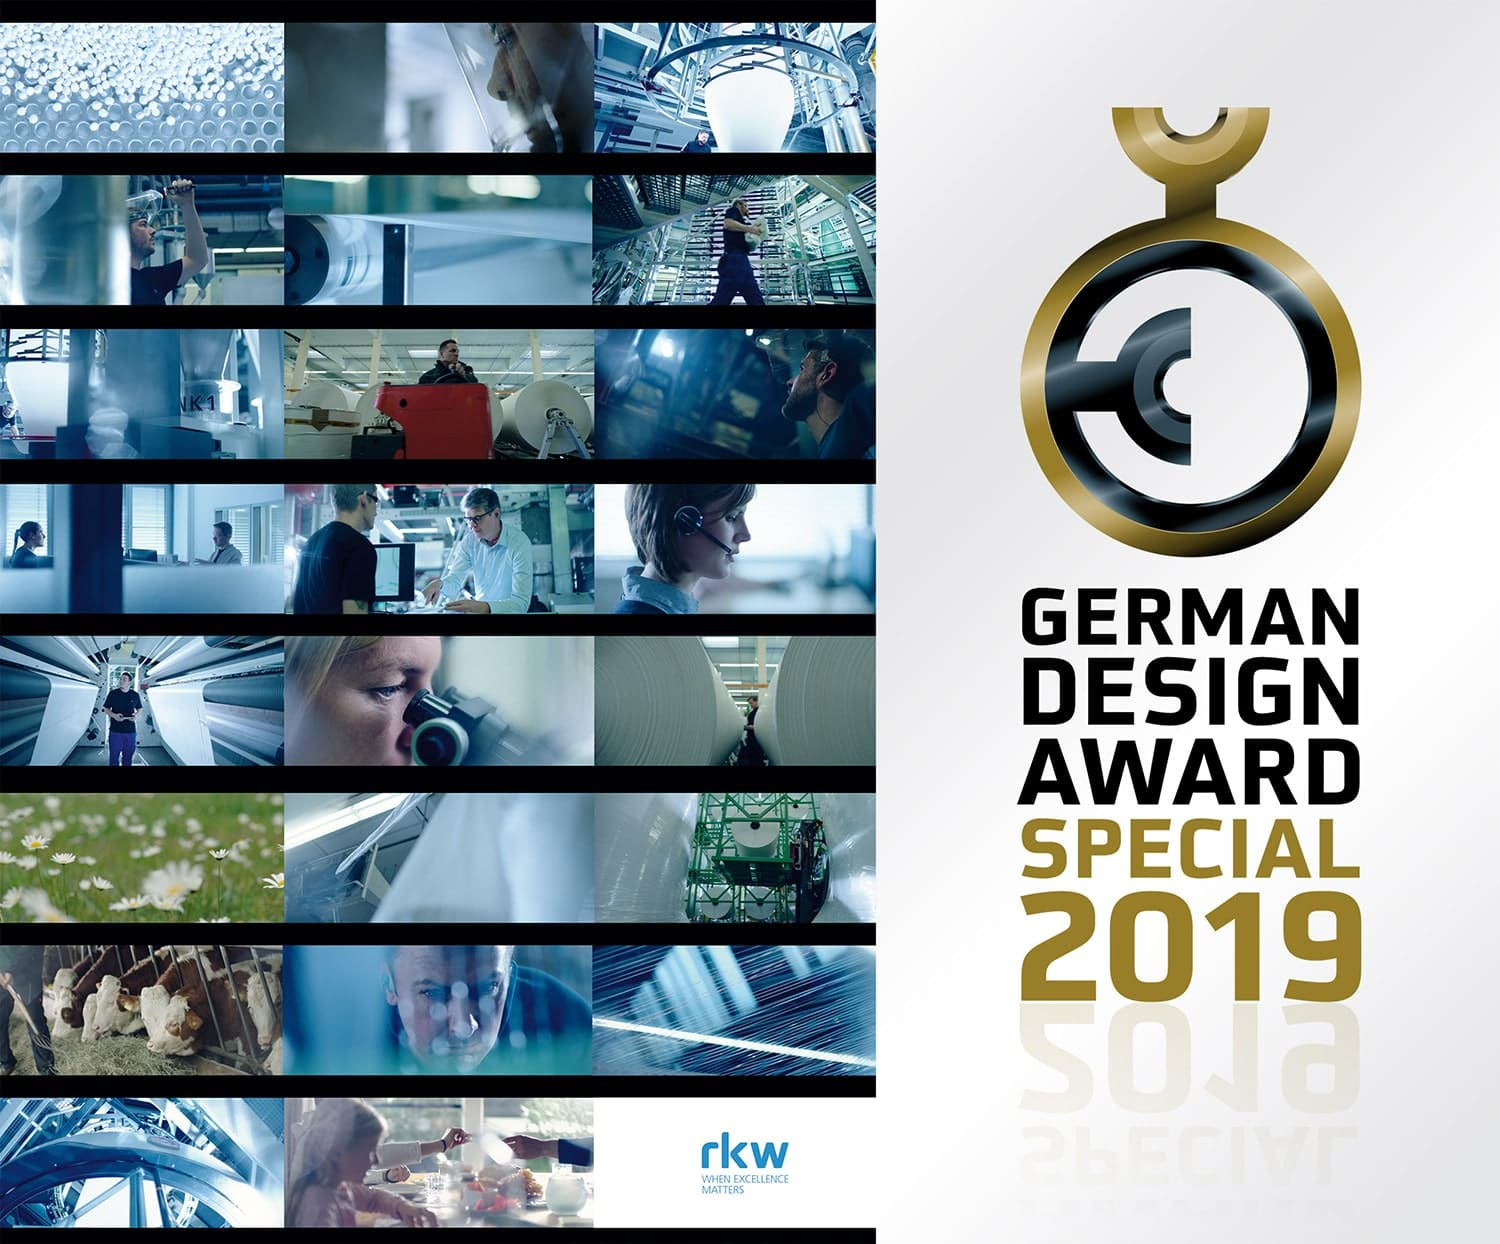 RKW Group - German Design Award